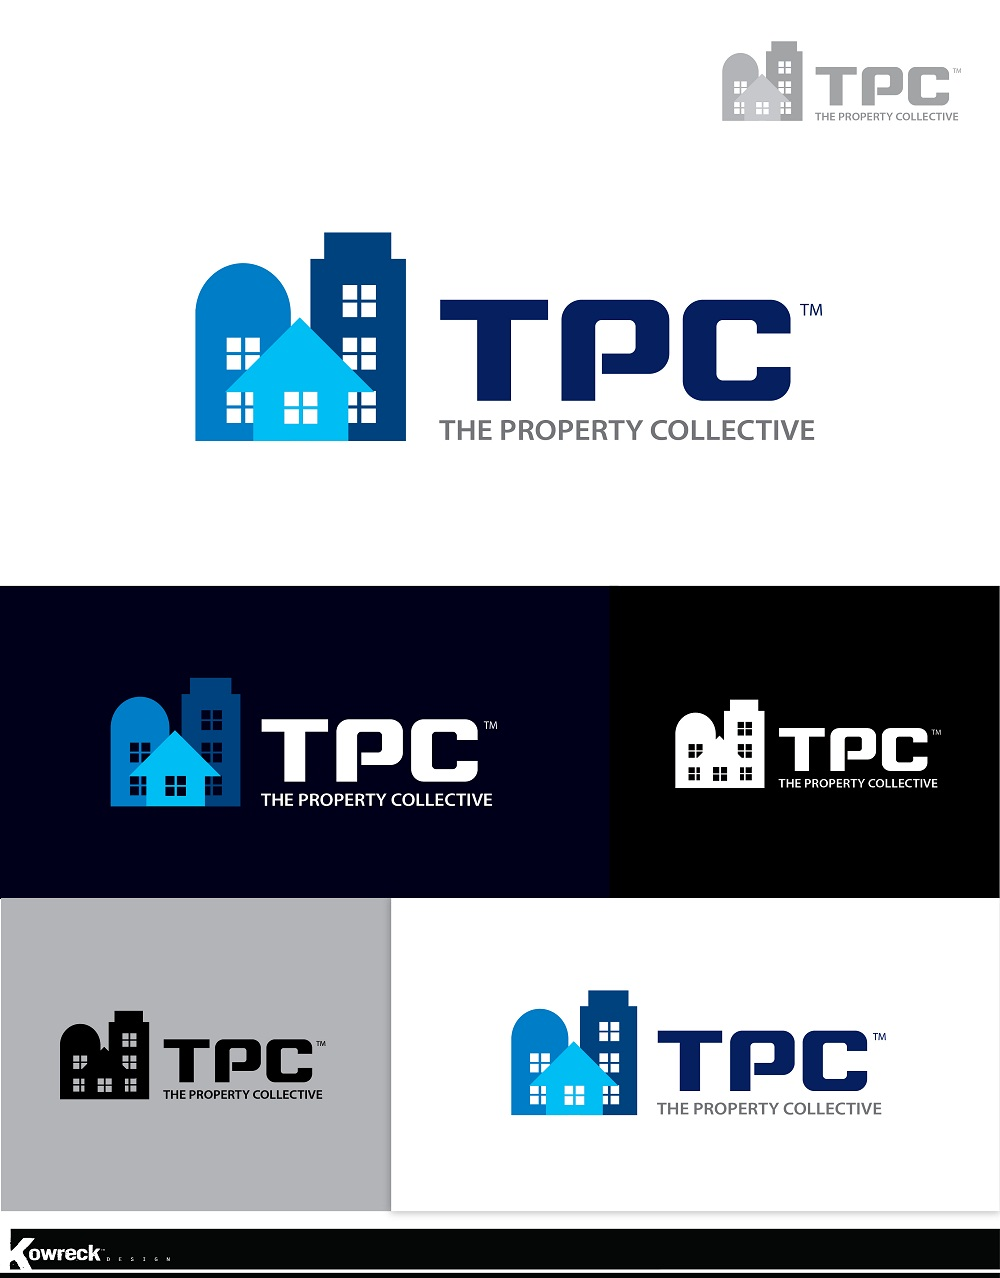 Logo Design by kowreck - Entry No. 61 in the Logo Design Contest Unique Logo Design Wanted for TPC.